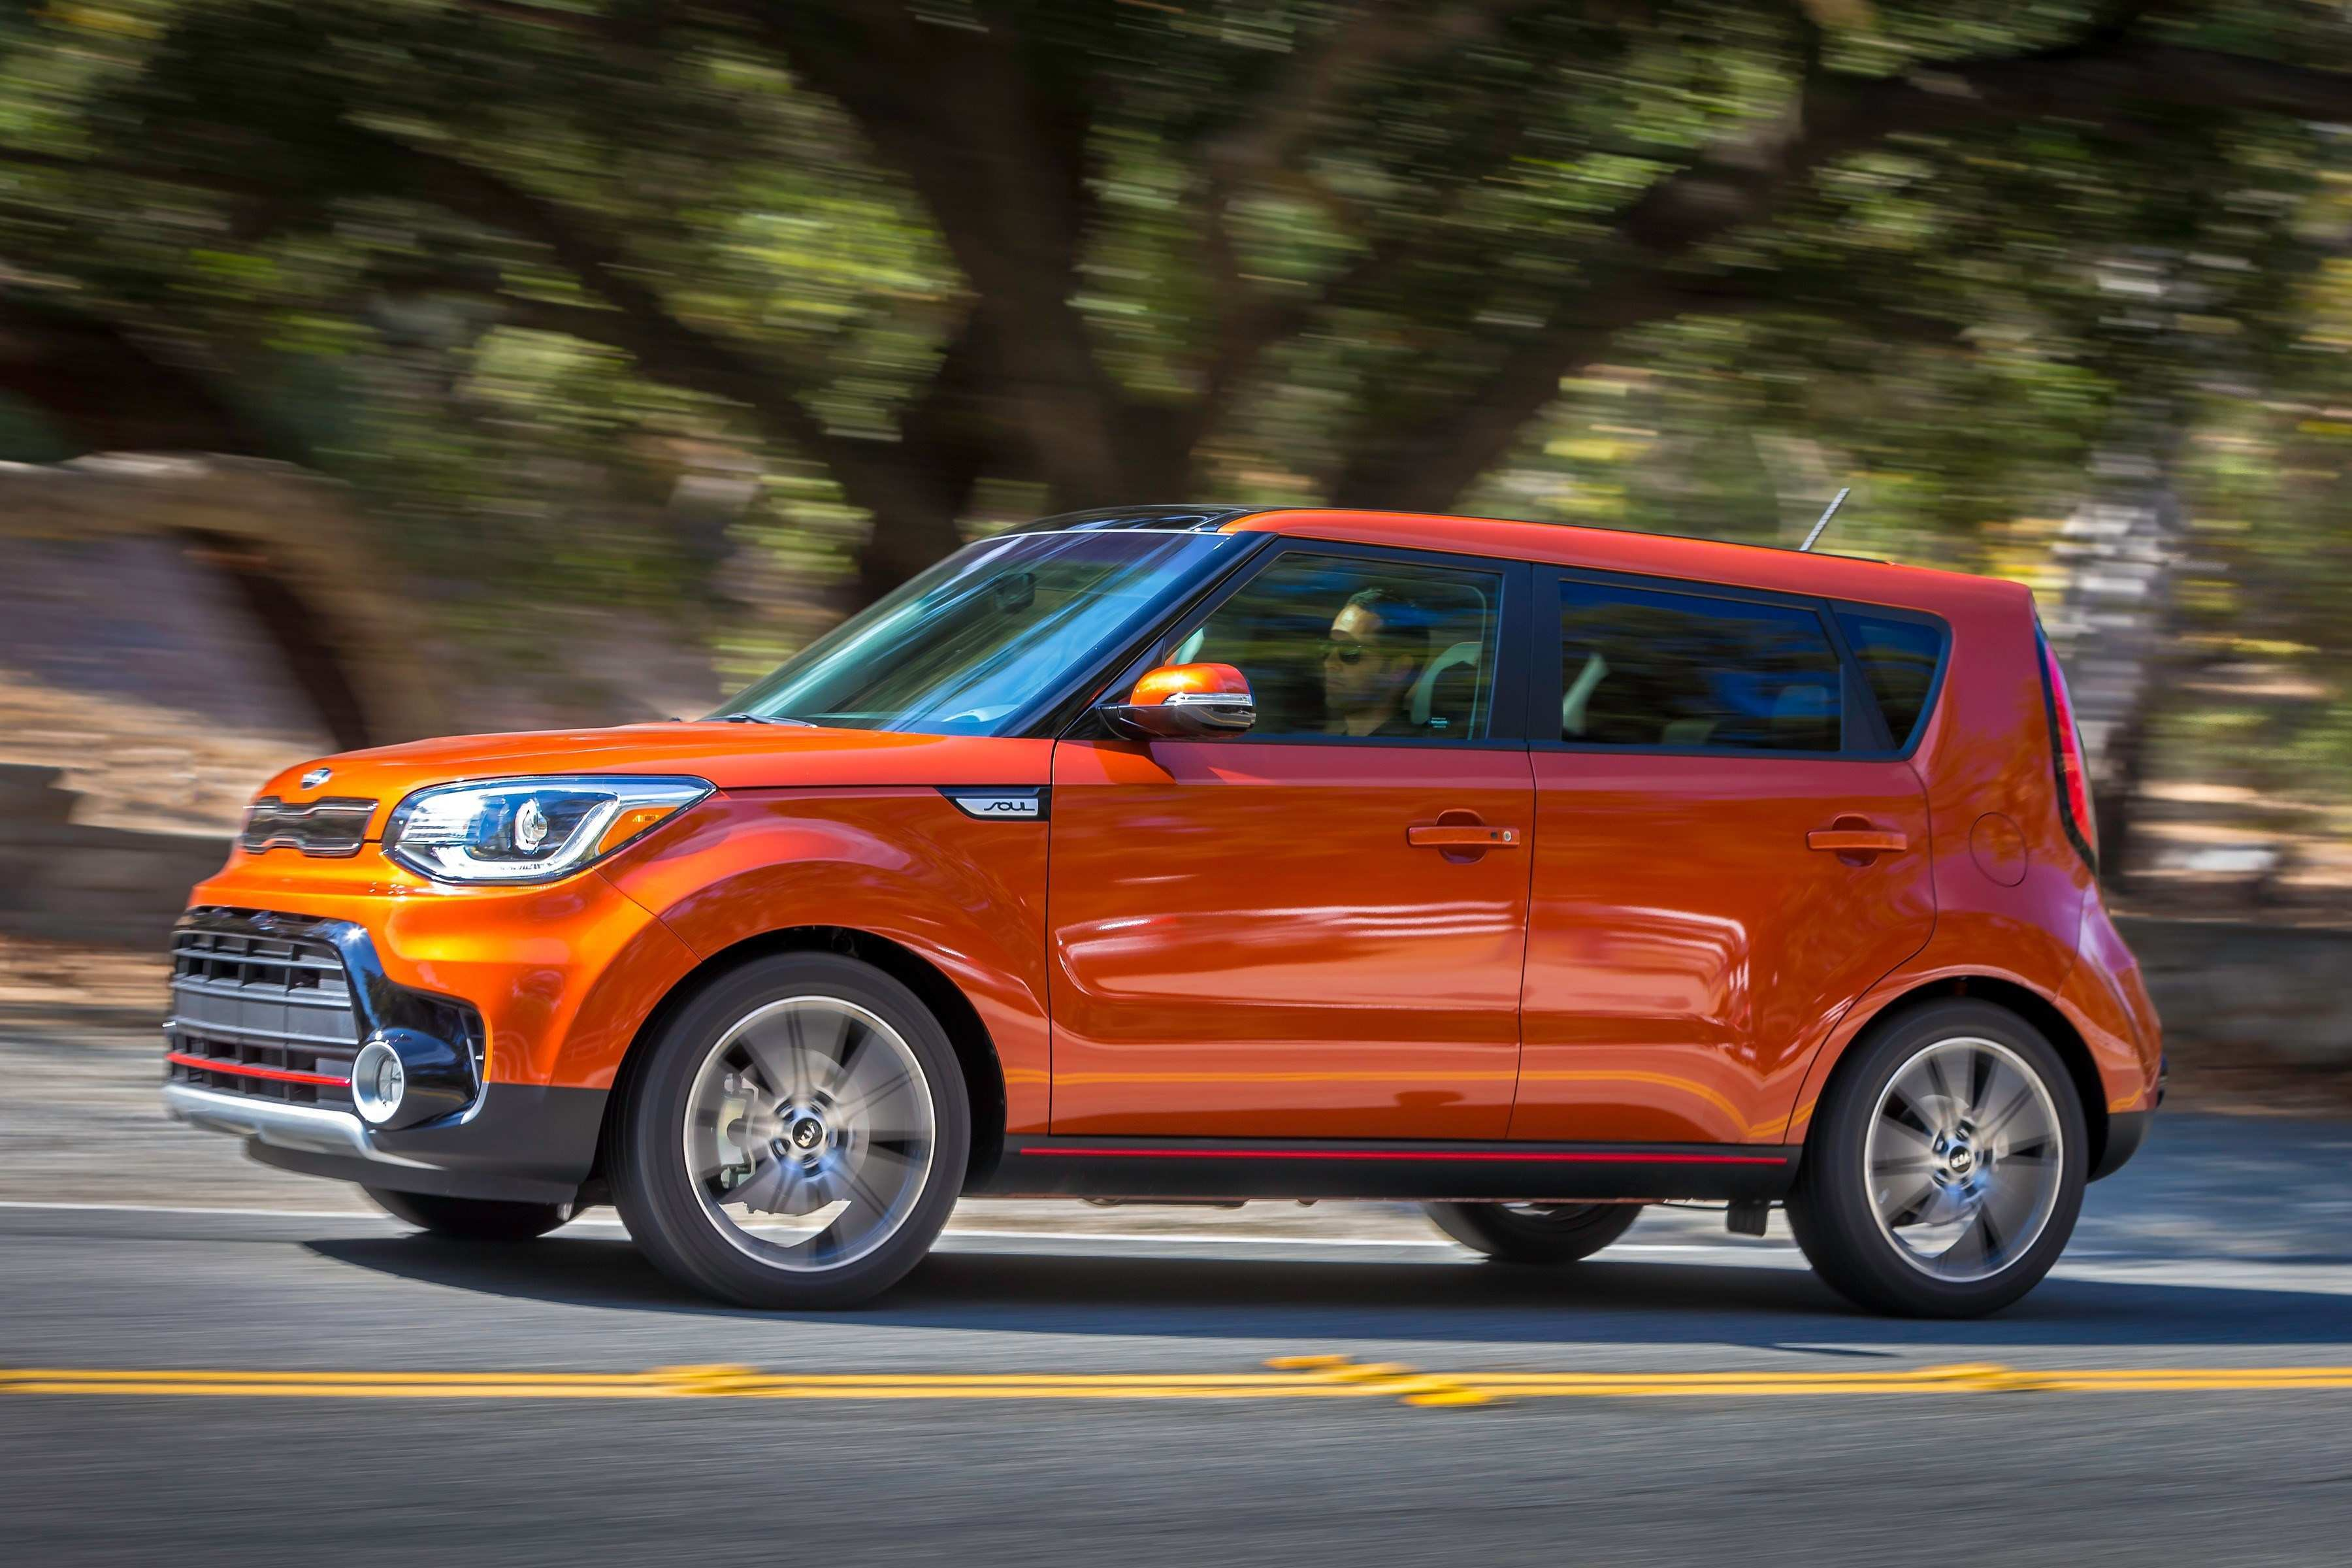 63 The Best 2020 Kia Soul Accessories First Drive